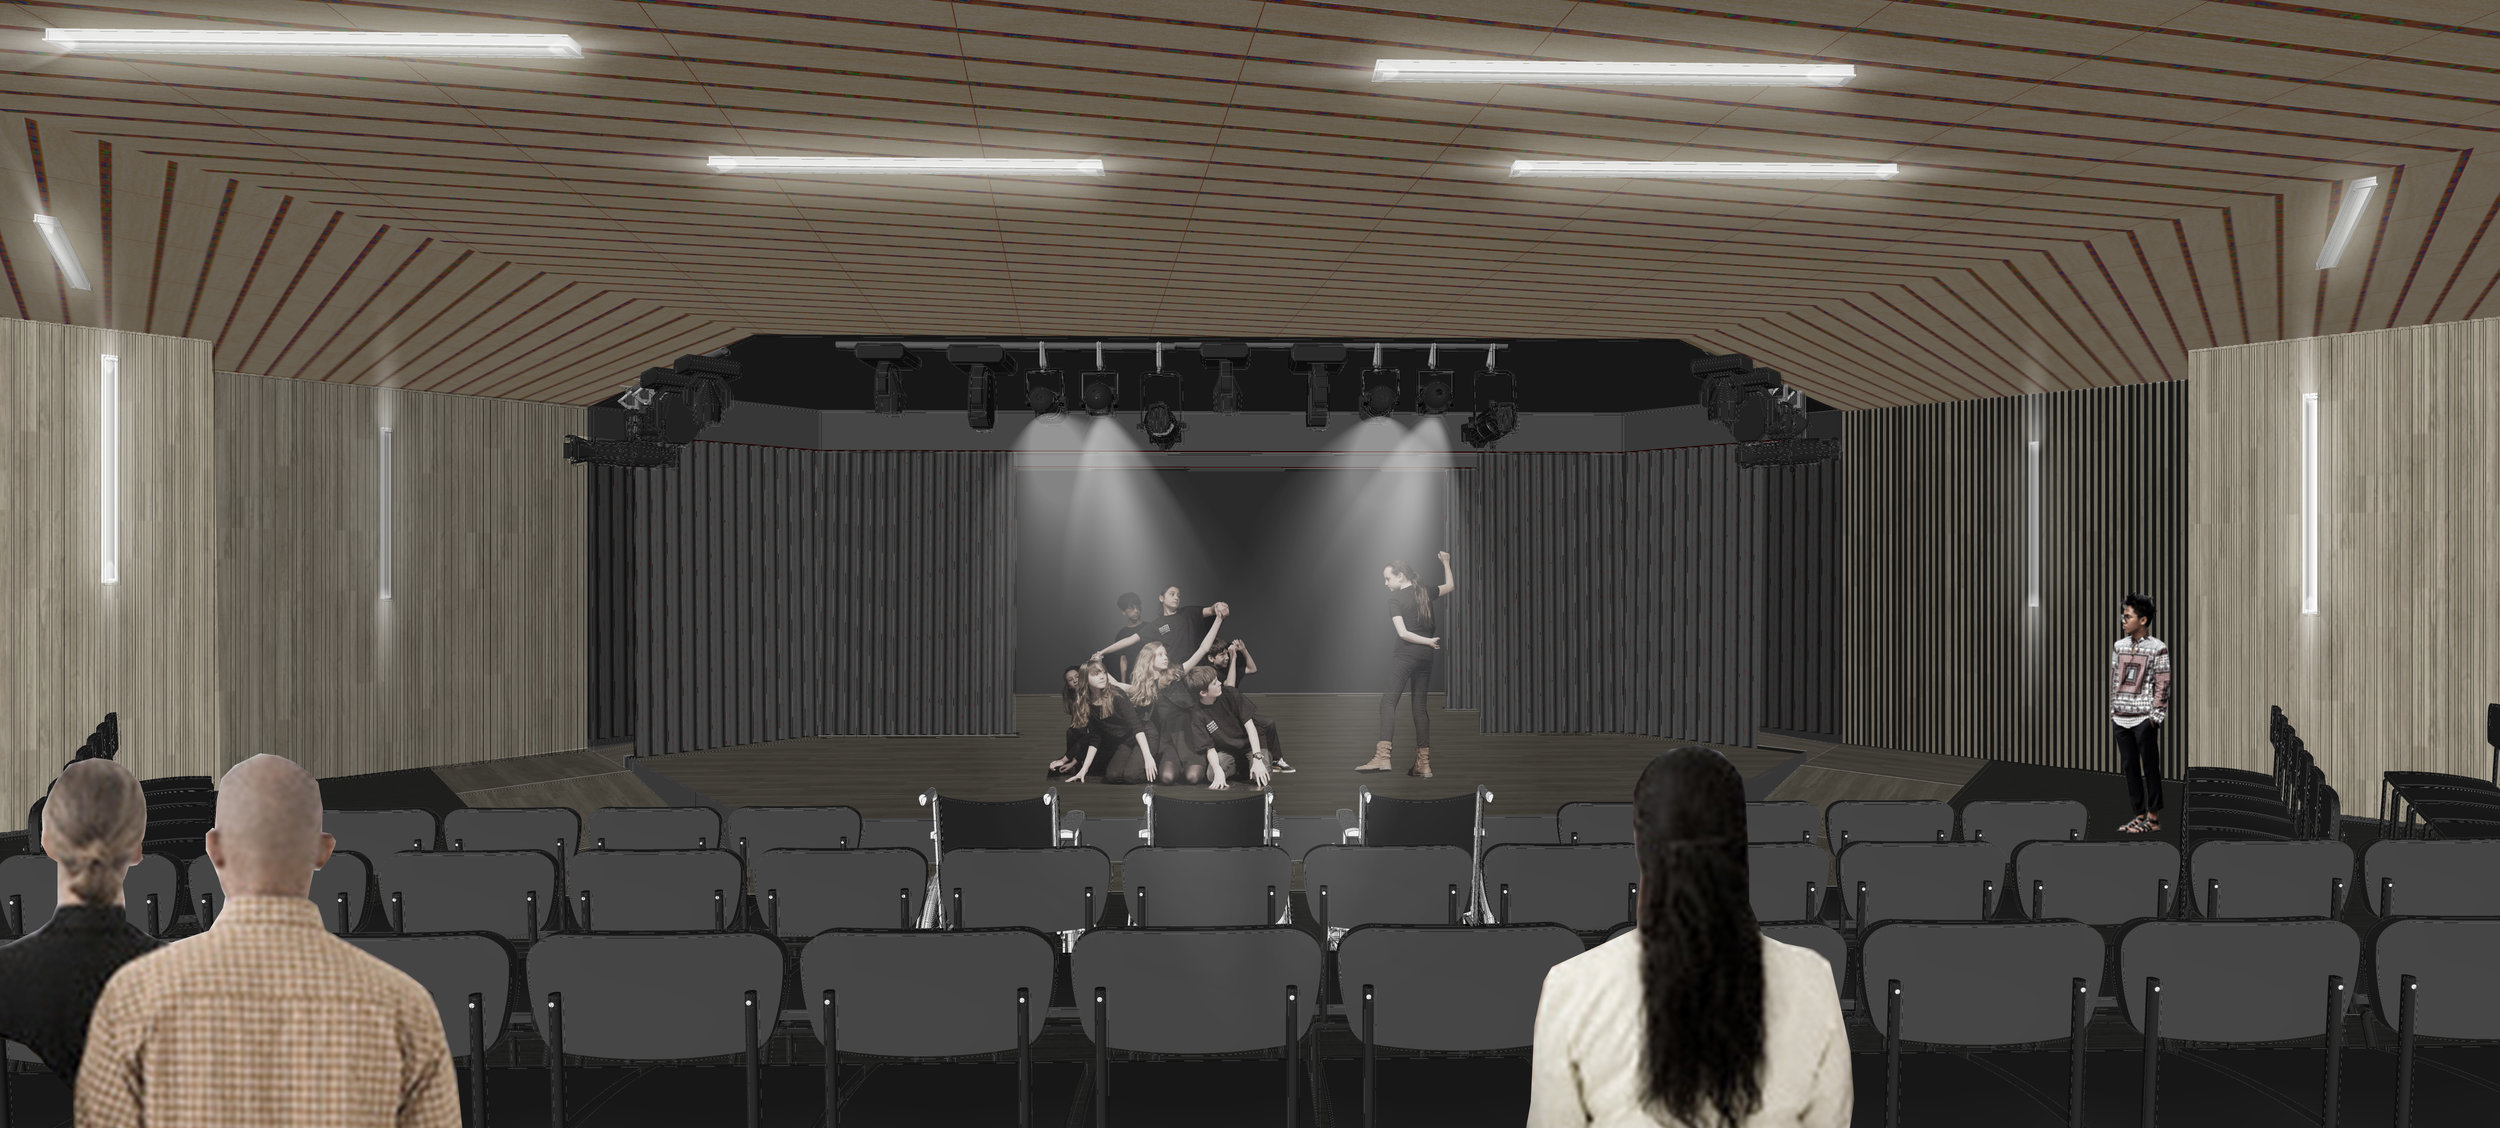 OP High School - Theatre Renovation Option 1 stage.jpg